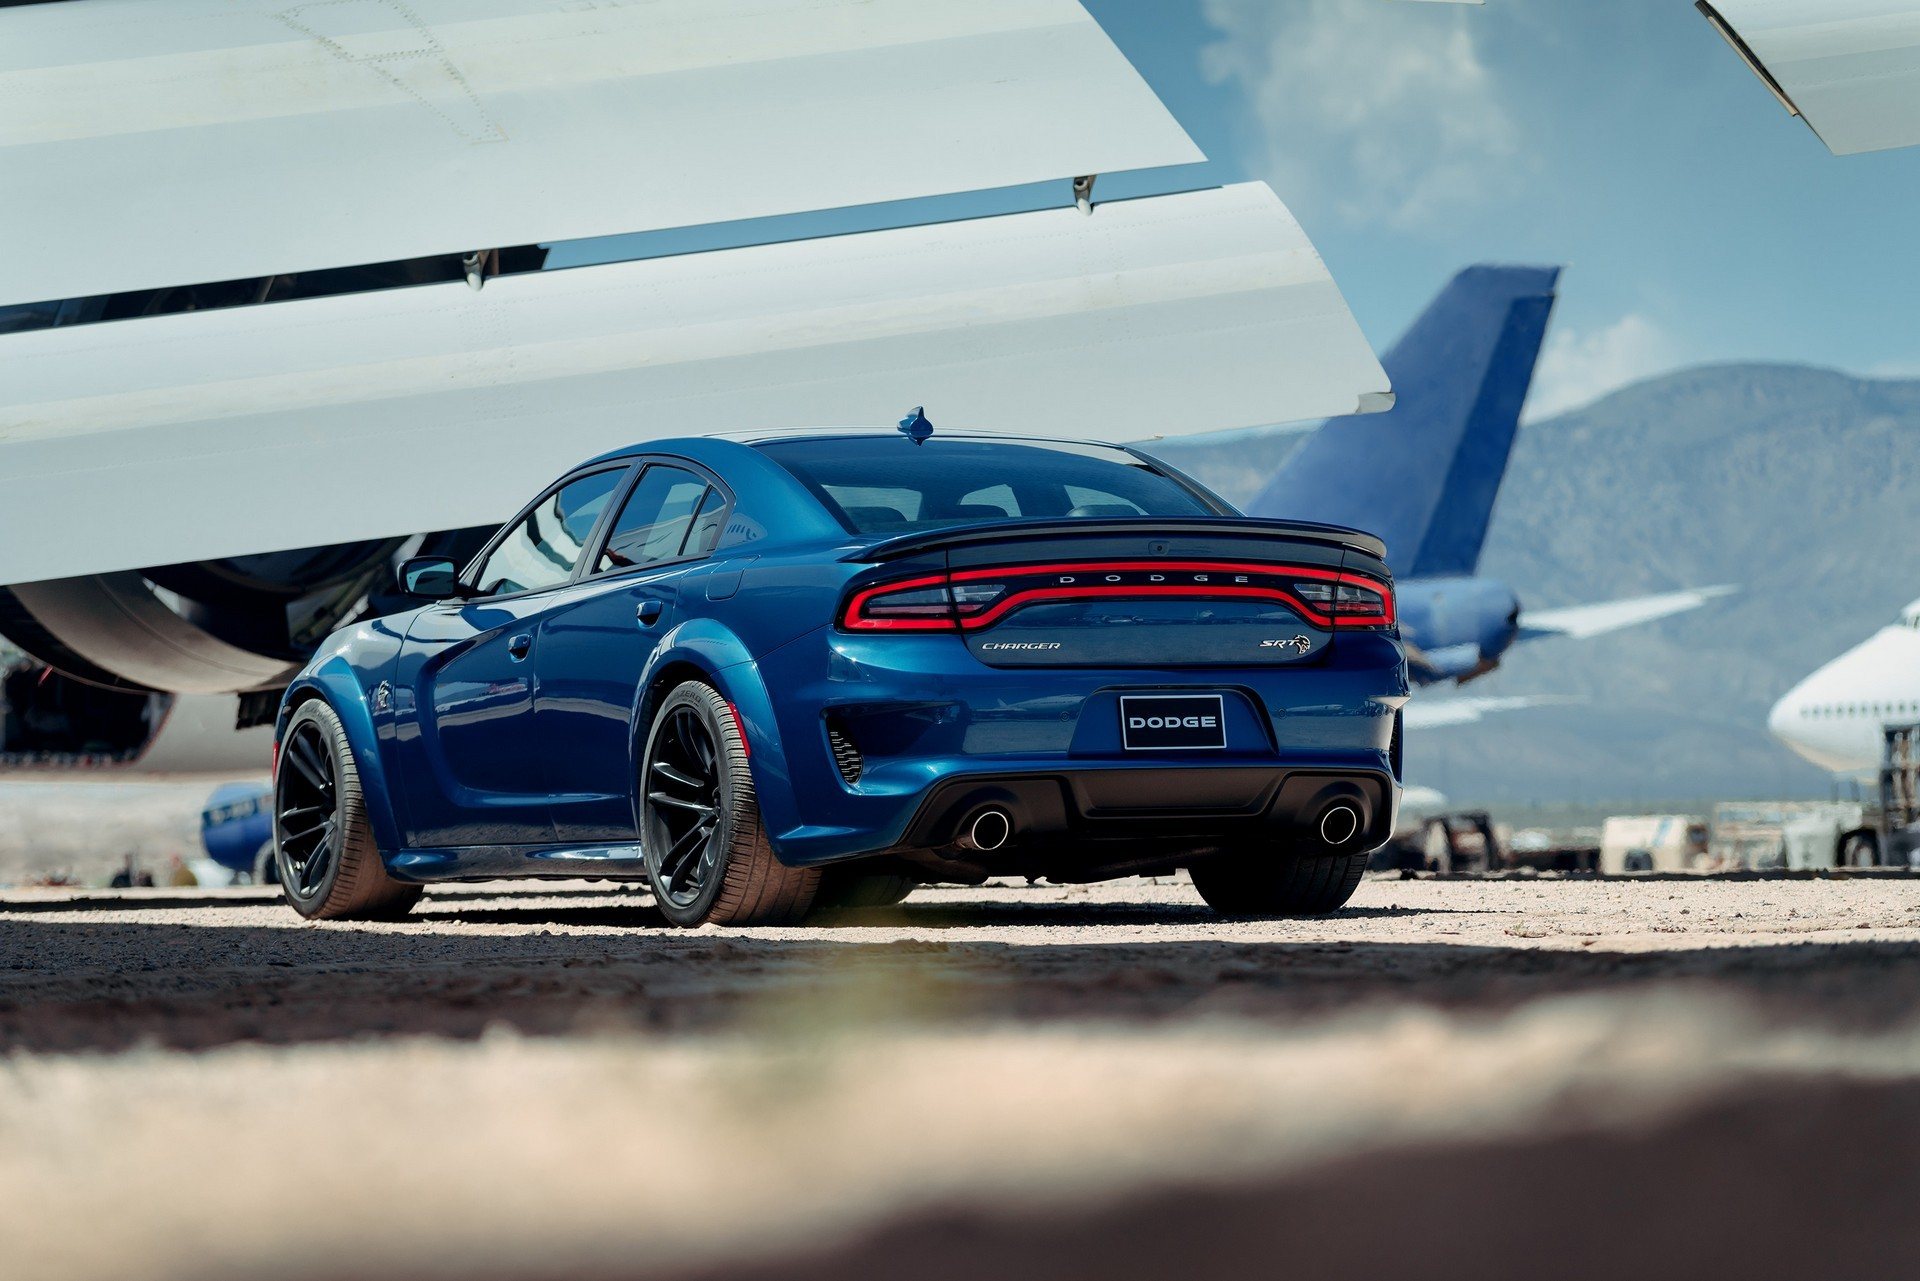 Fast Furious 9 Dodge Charger Srt Demon Widebody Revealed Autoevolution